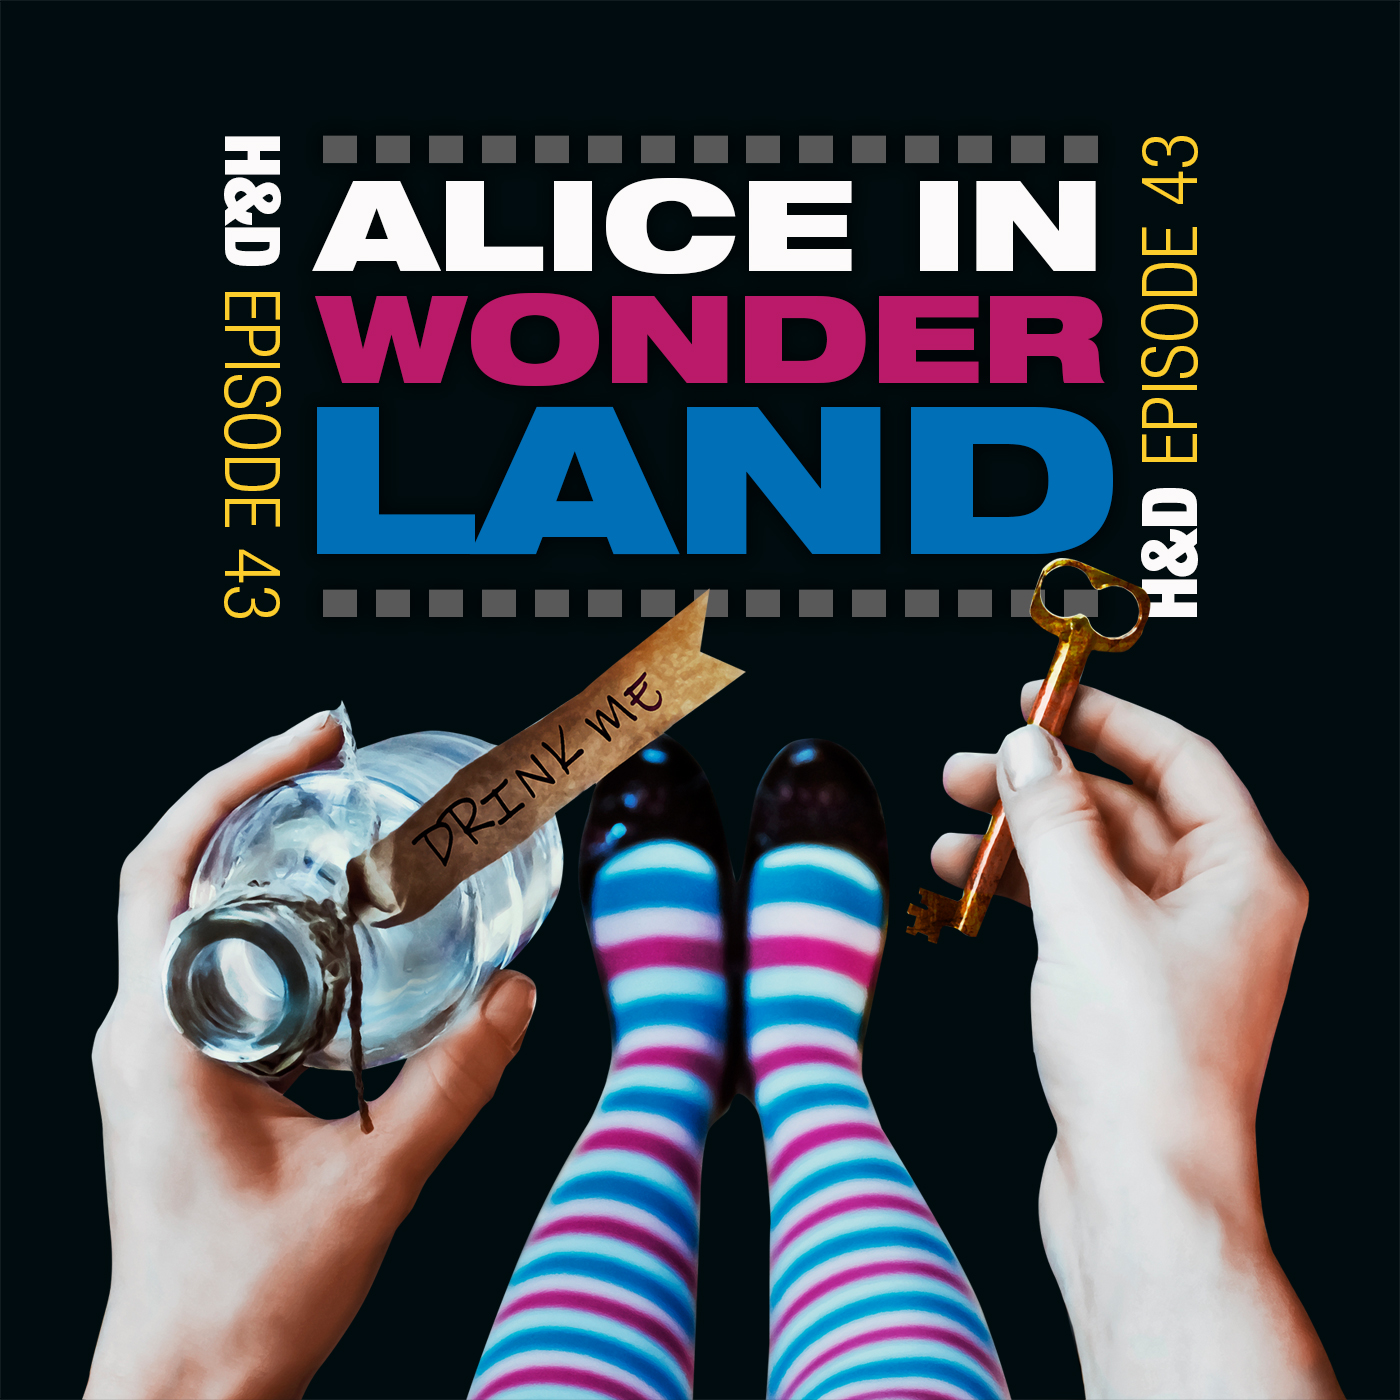 E43: ALICE IN WONDERLAND